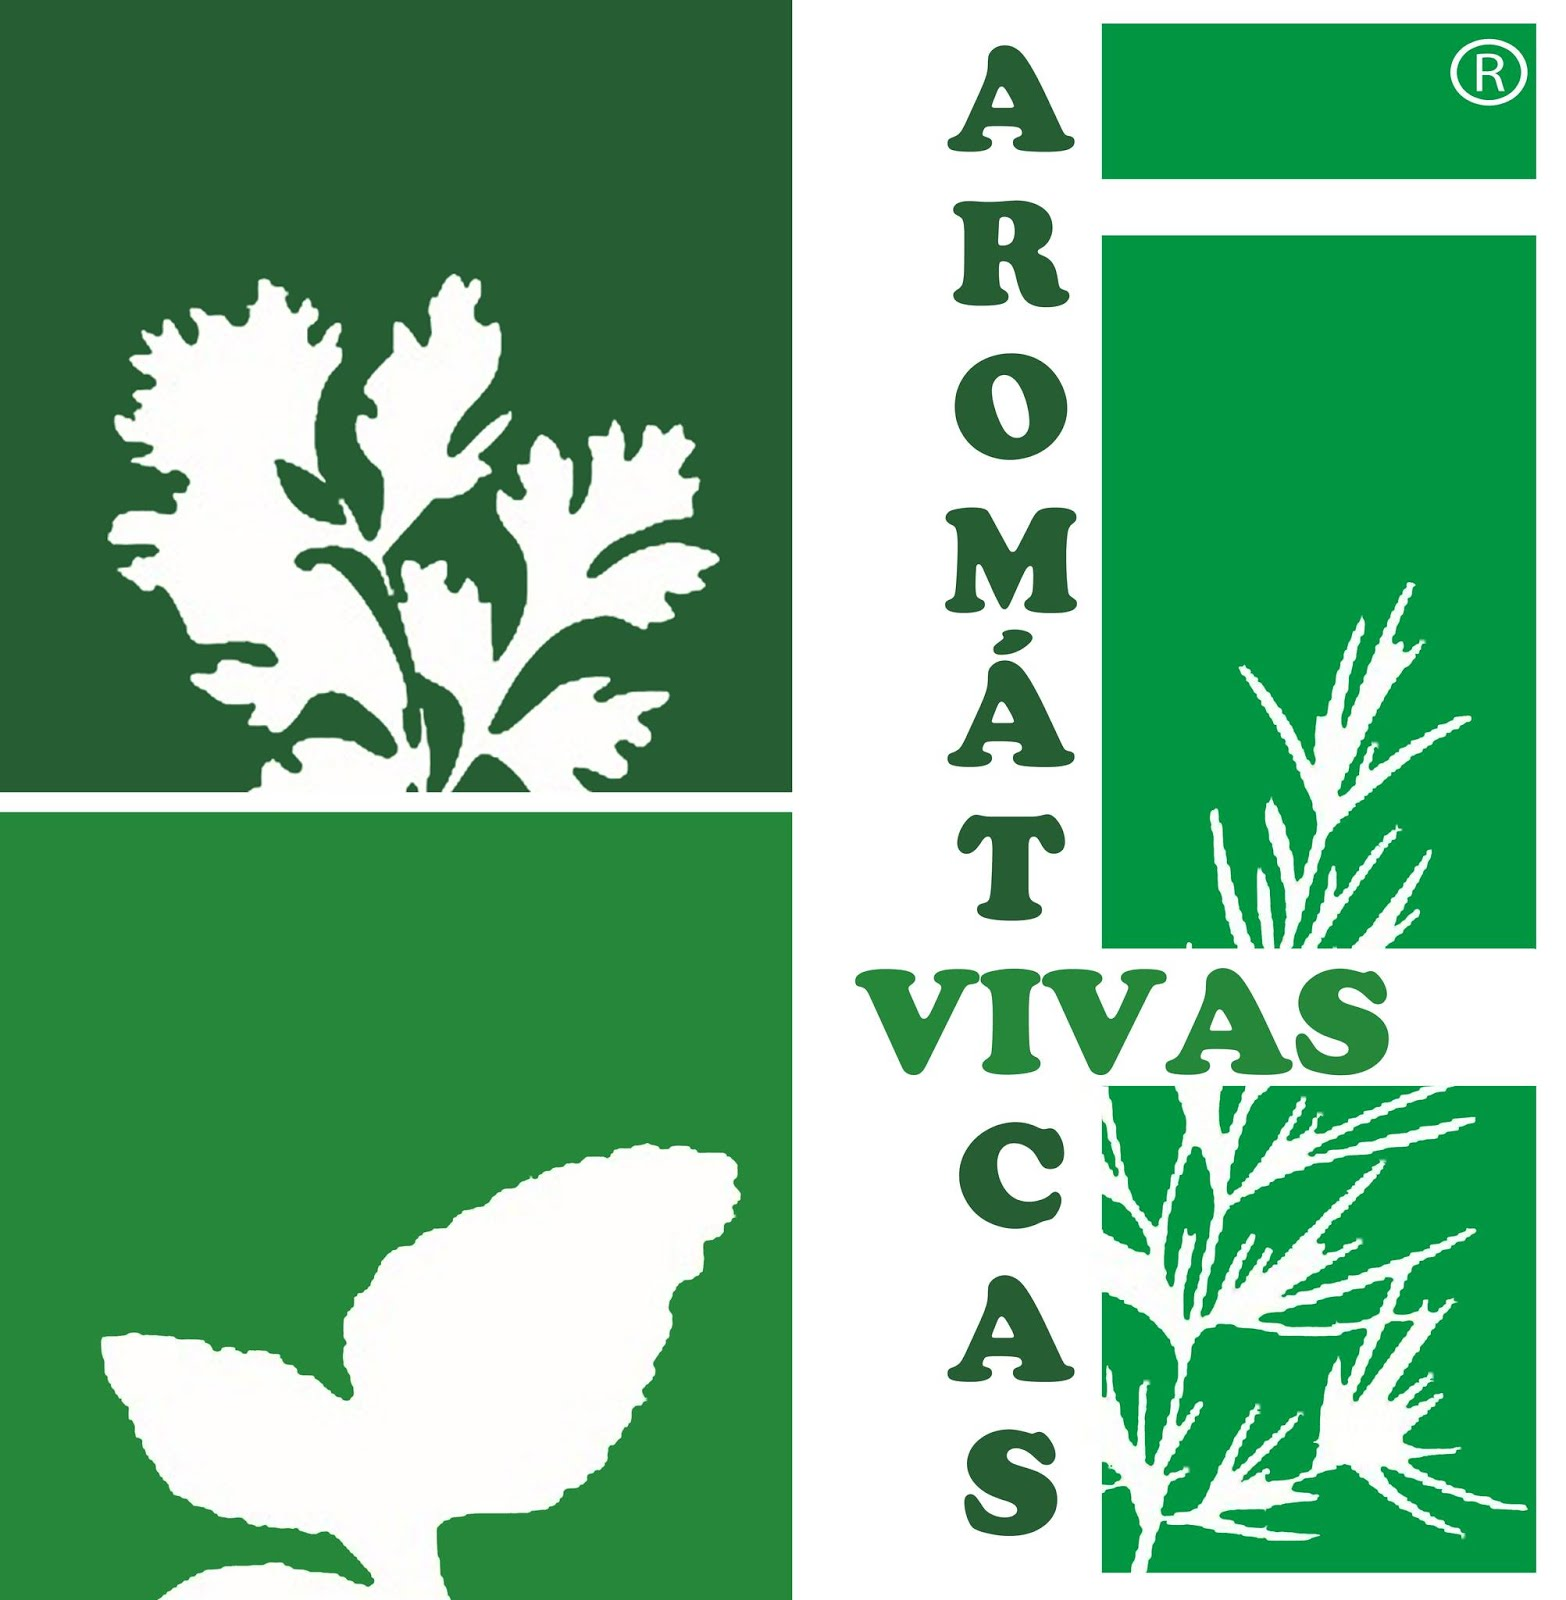 Parceria Aromáticas Vivas